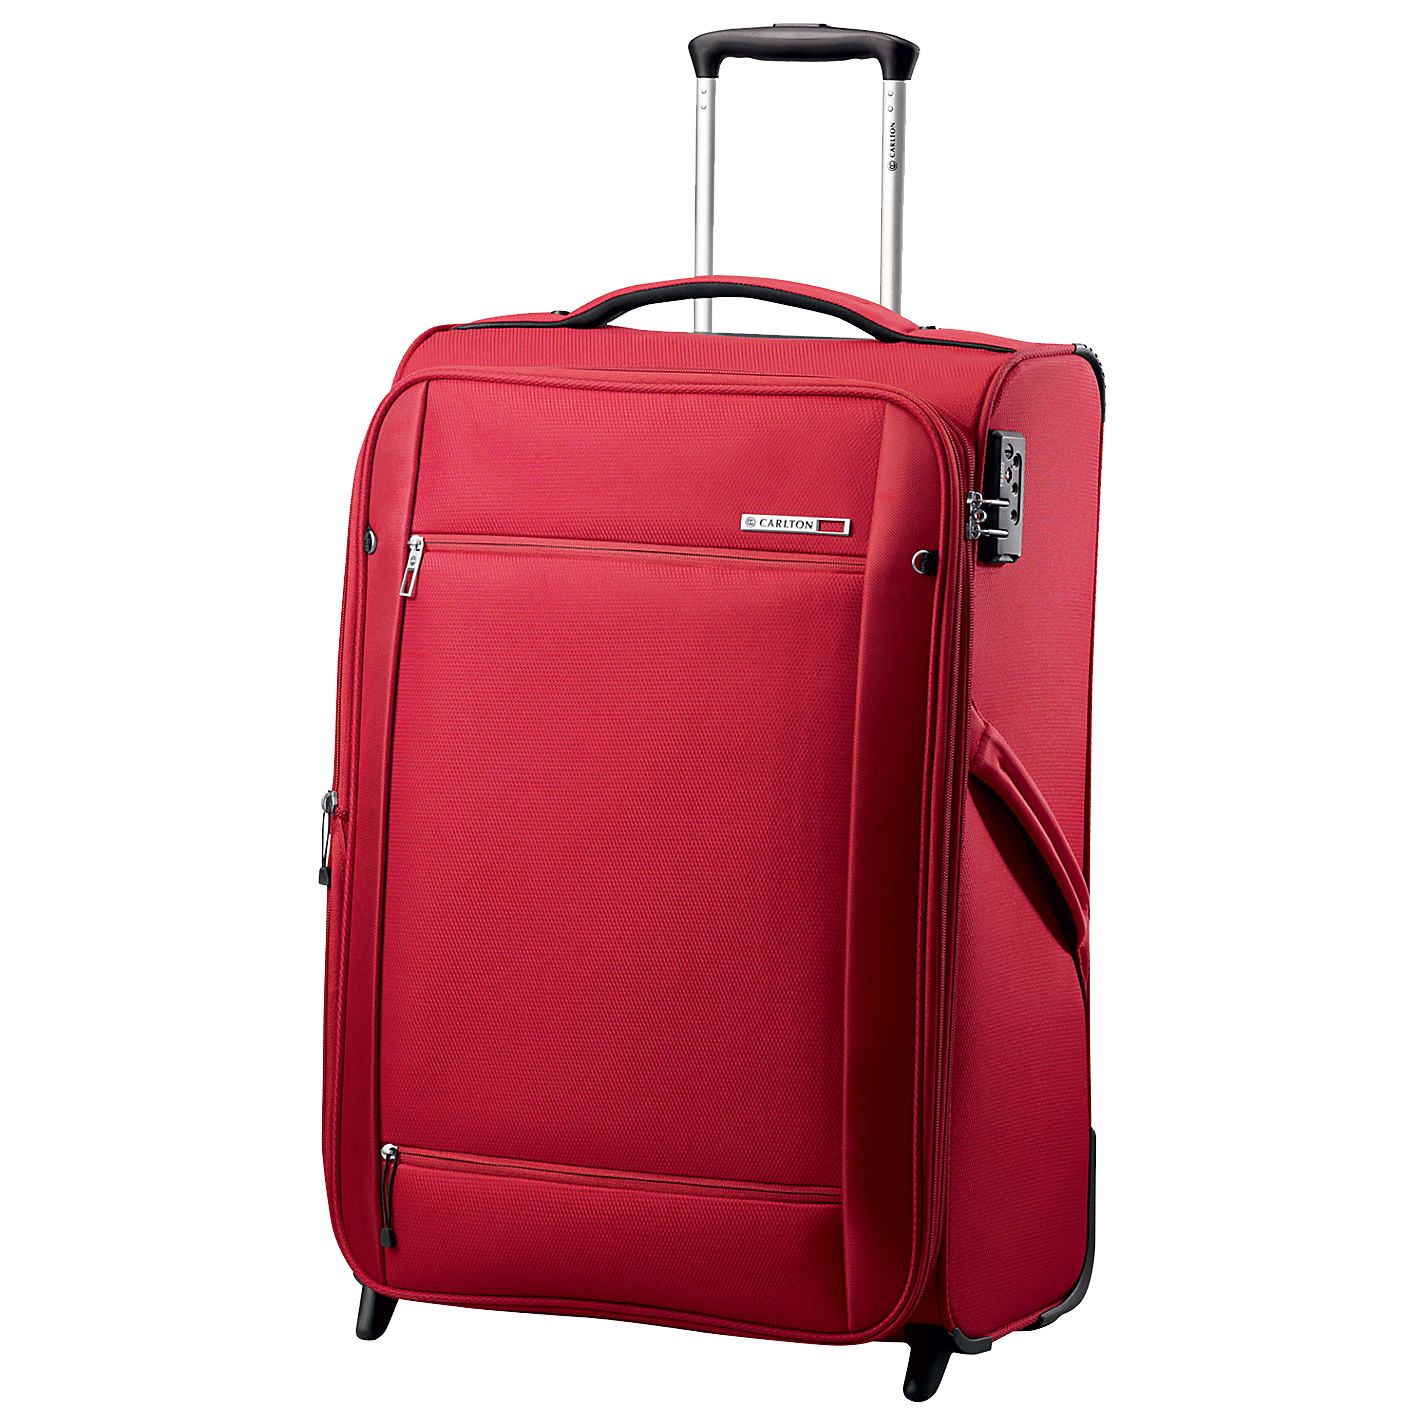 freeuse library Download hq png image. Suitcase transparent.